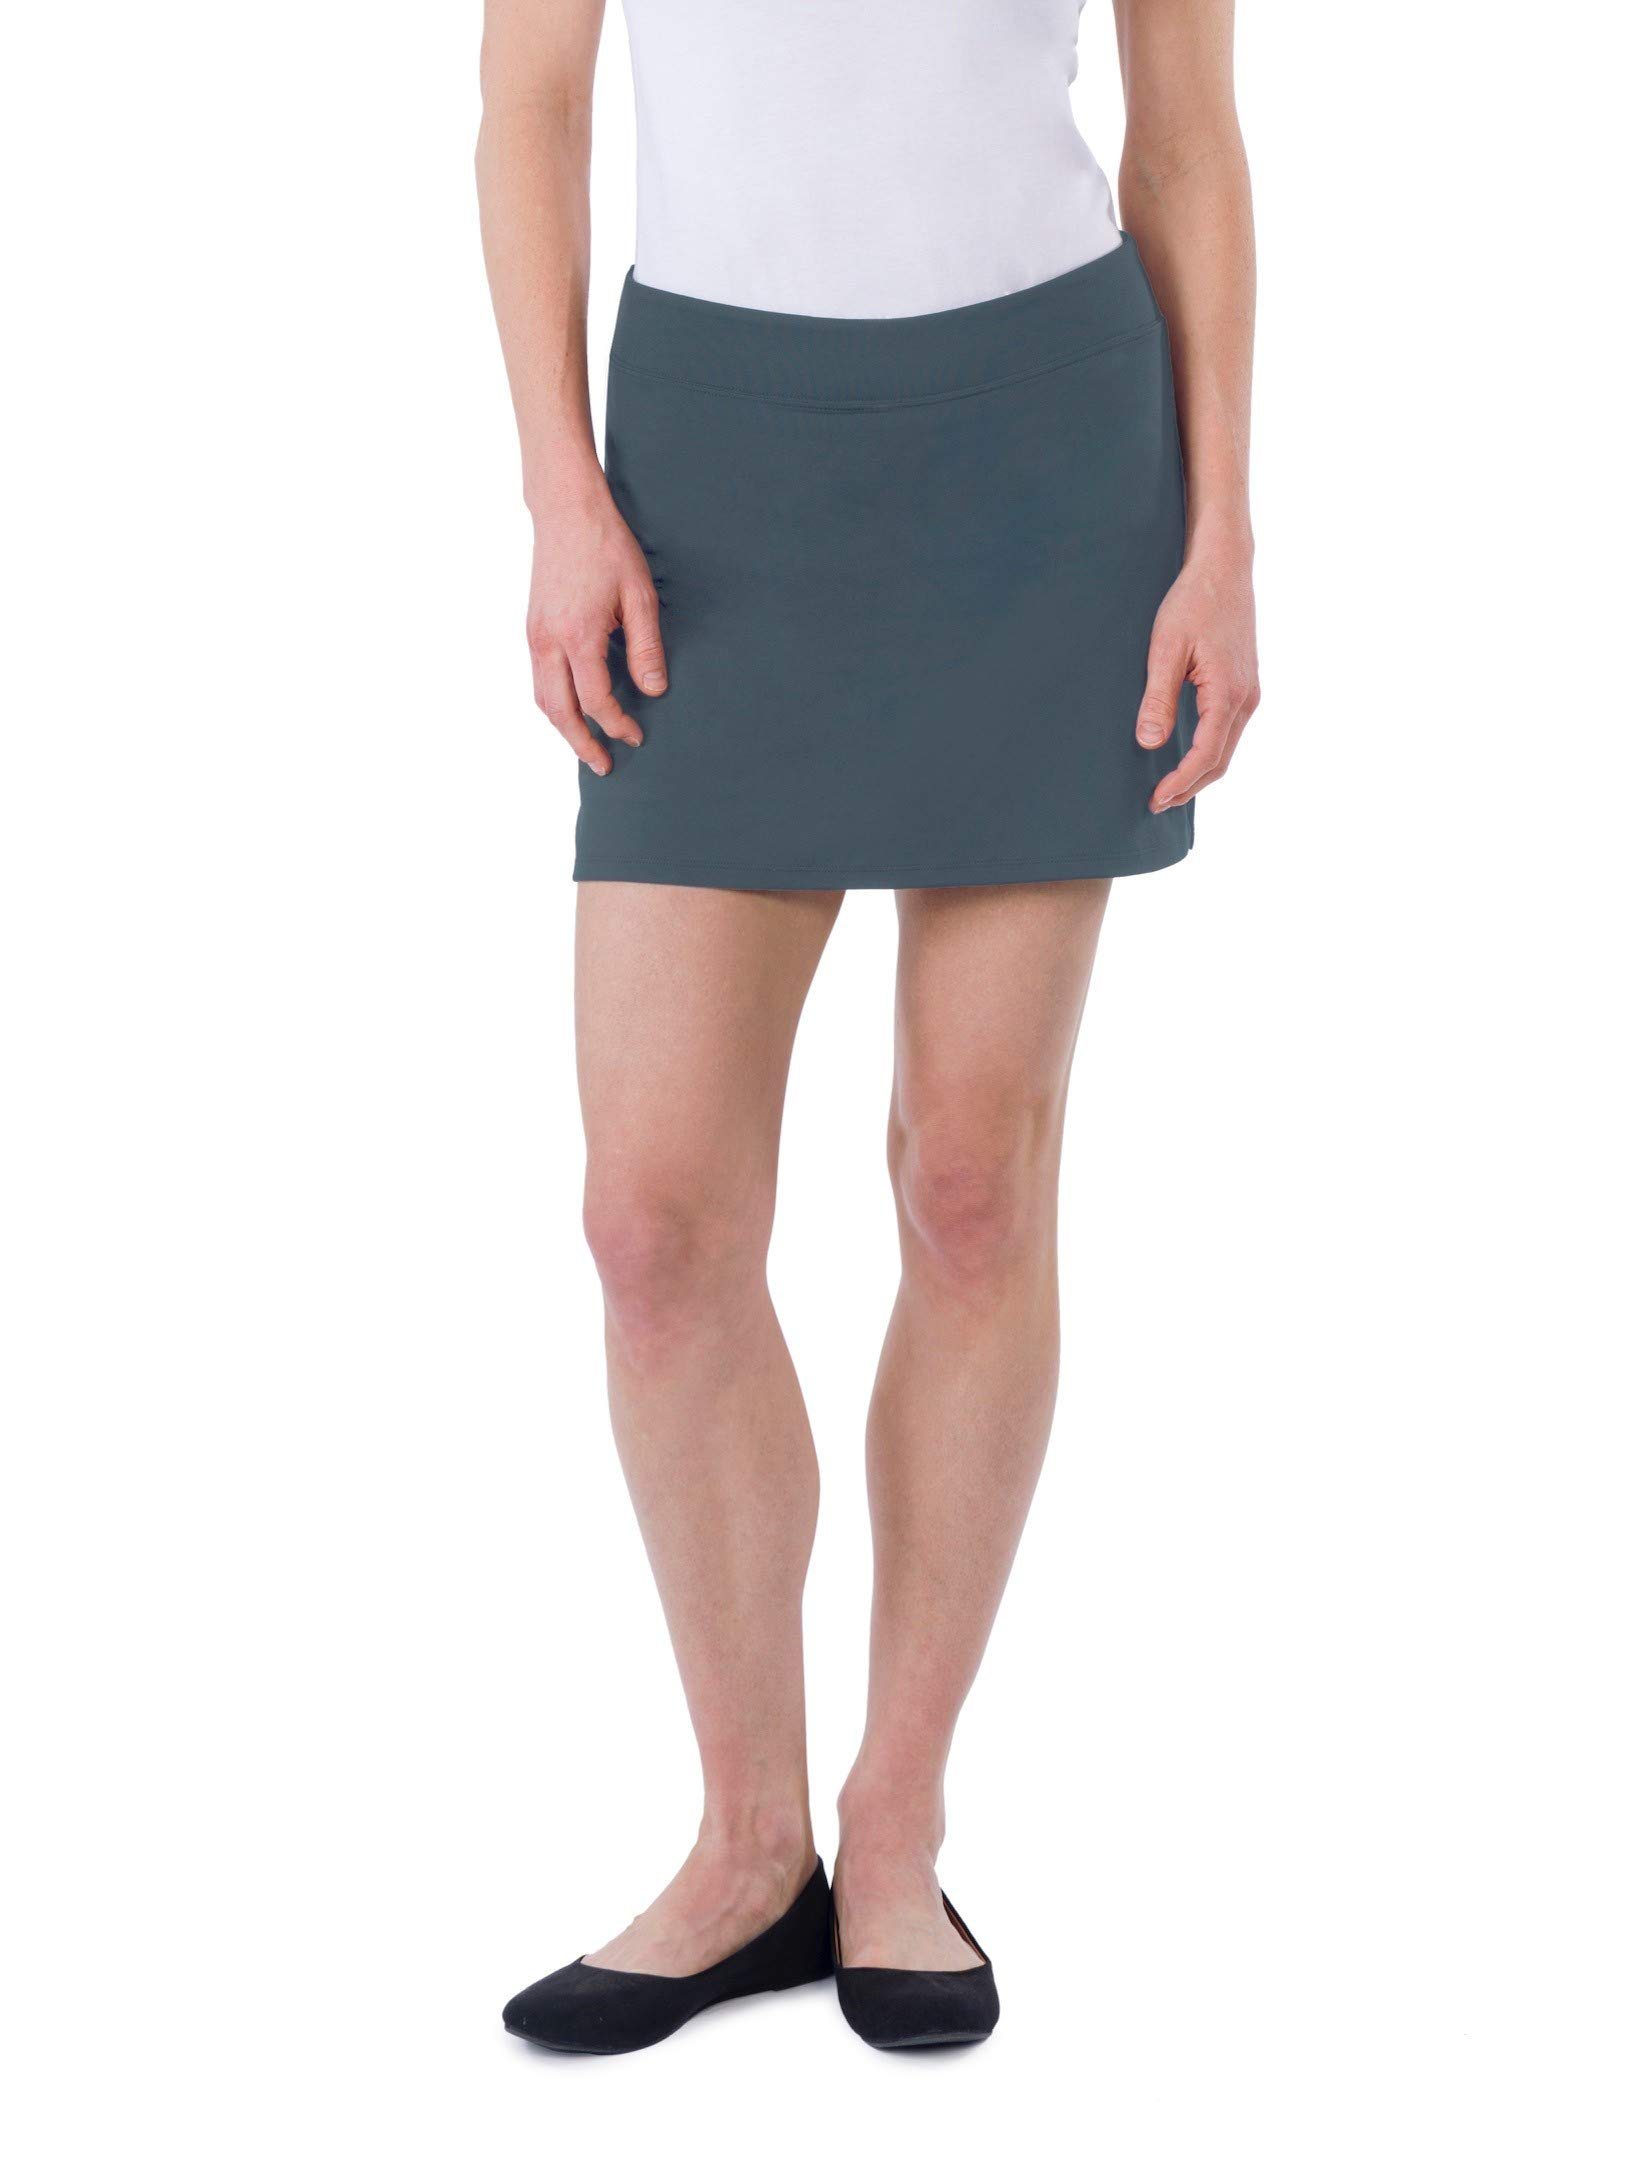 Colorado Clothing Women's Everyday Skort (Deep Cove, X-Small)